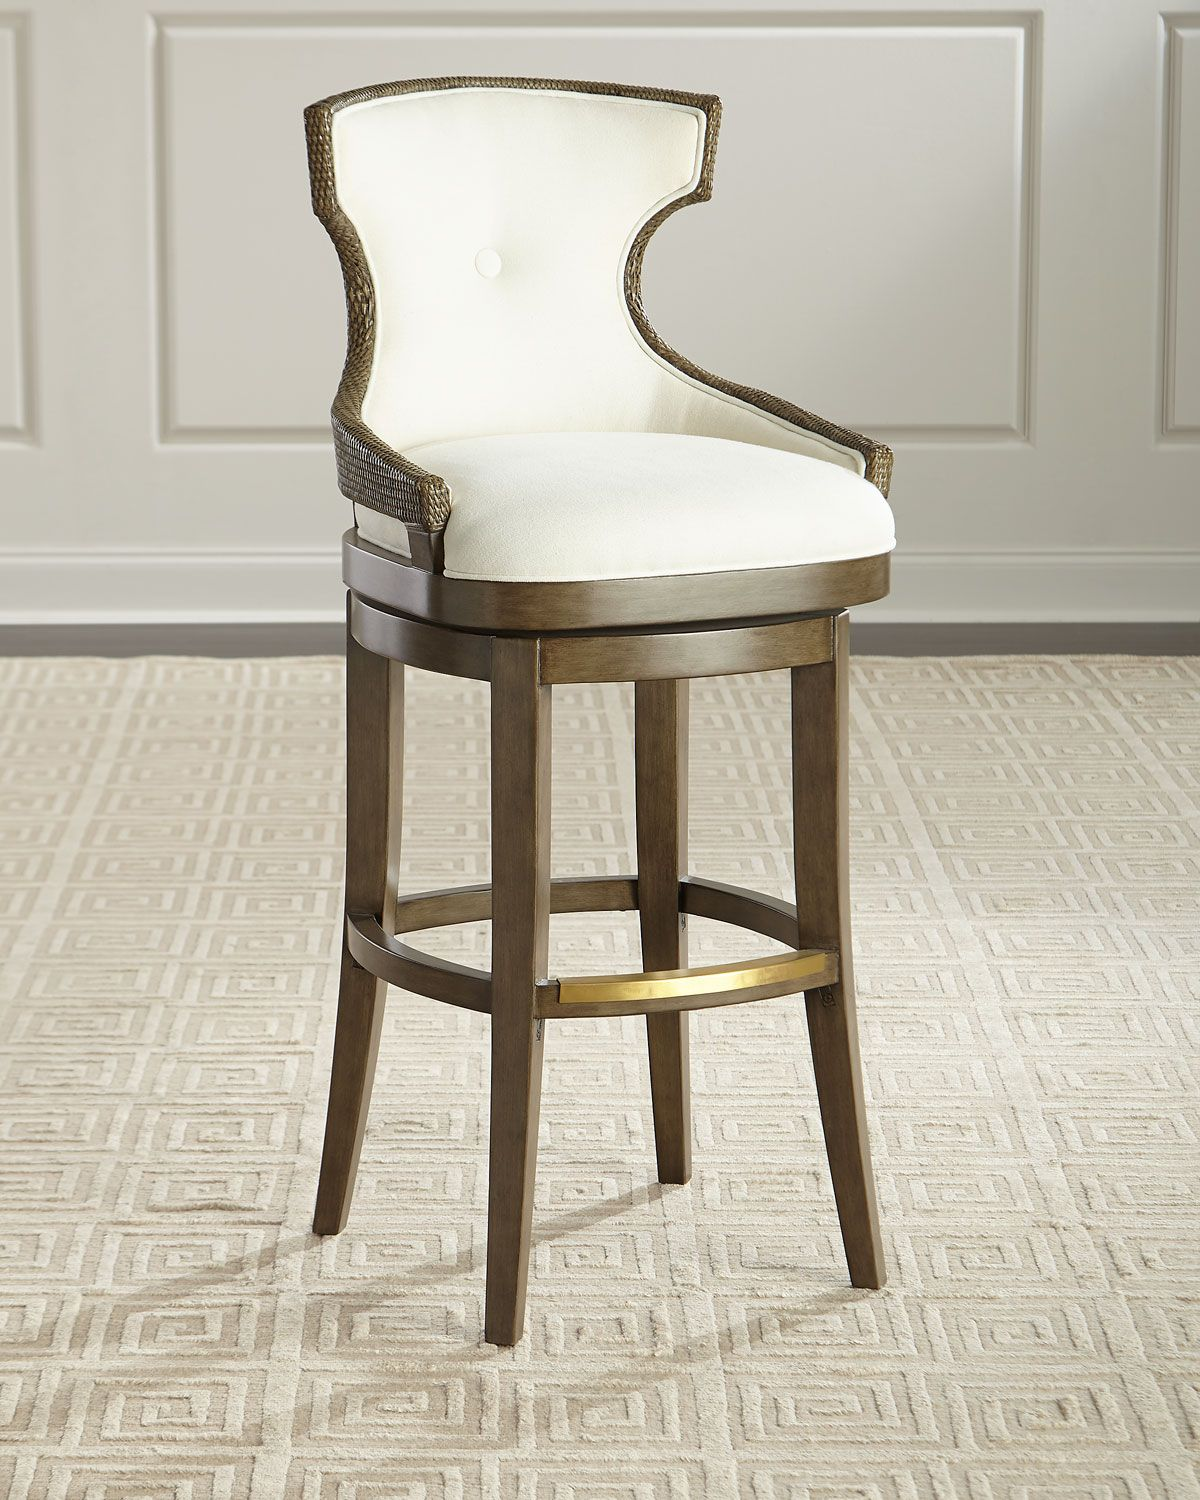 Palecek Zachary Bar Stool Bar Stools Upholstered Seating Stool